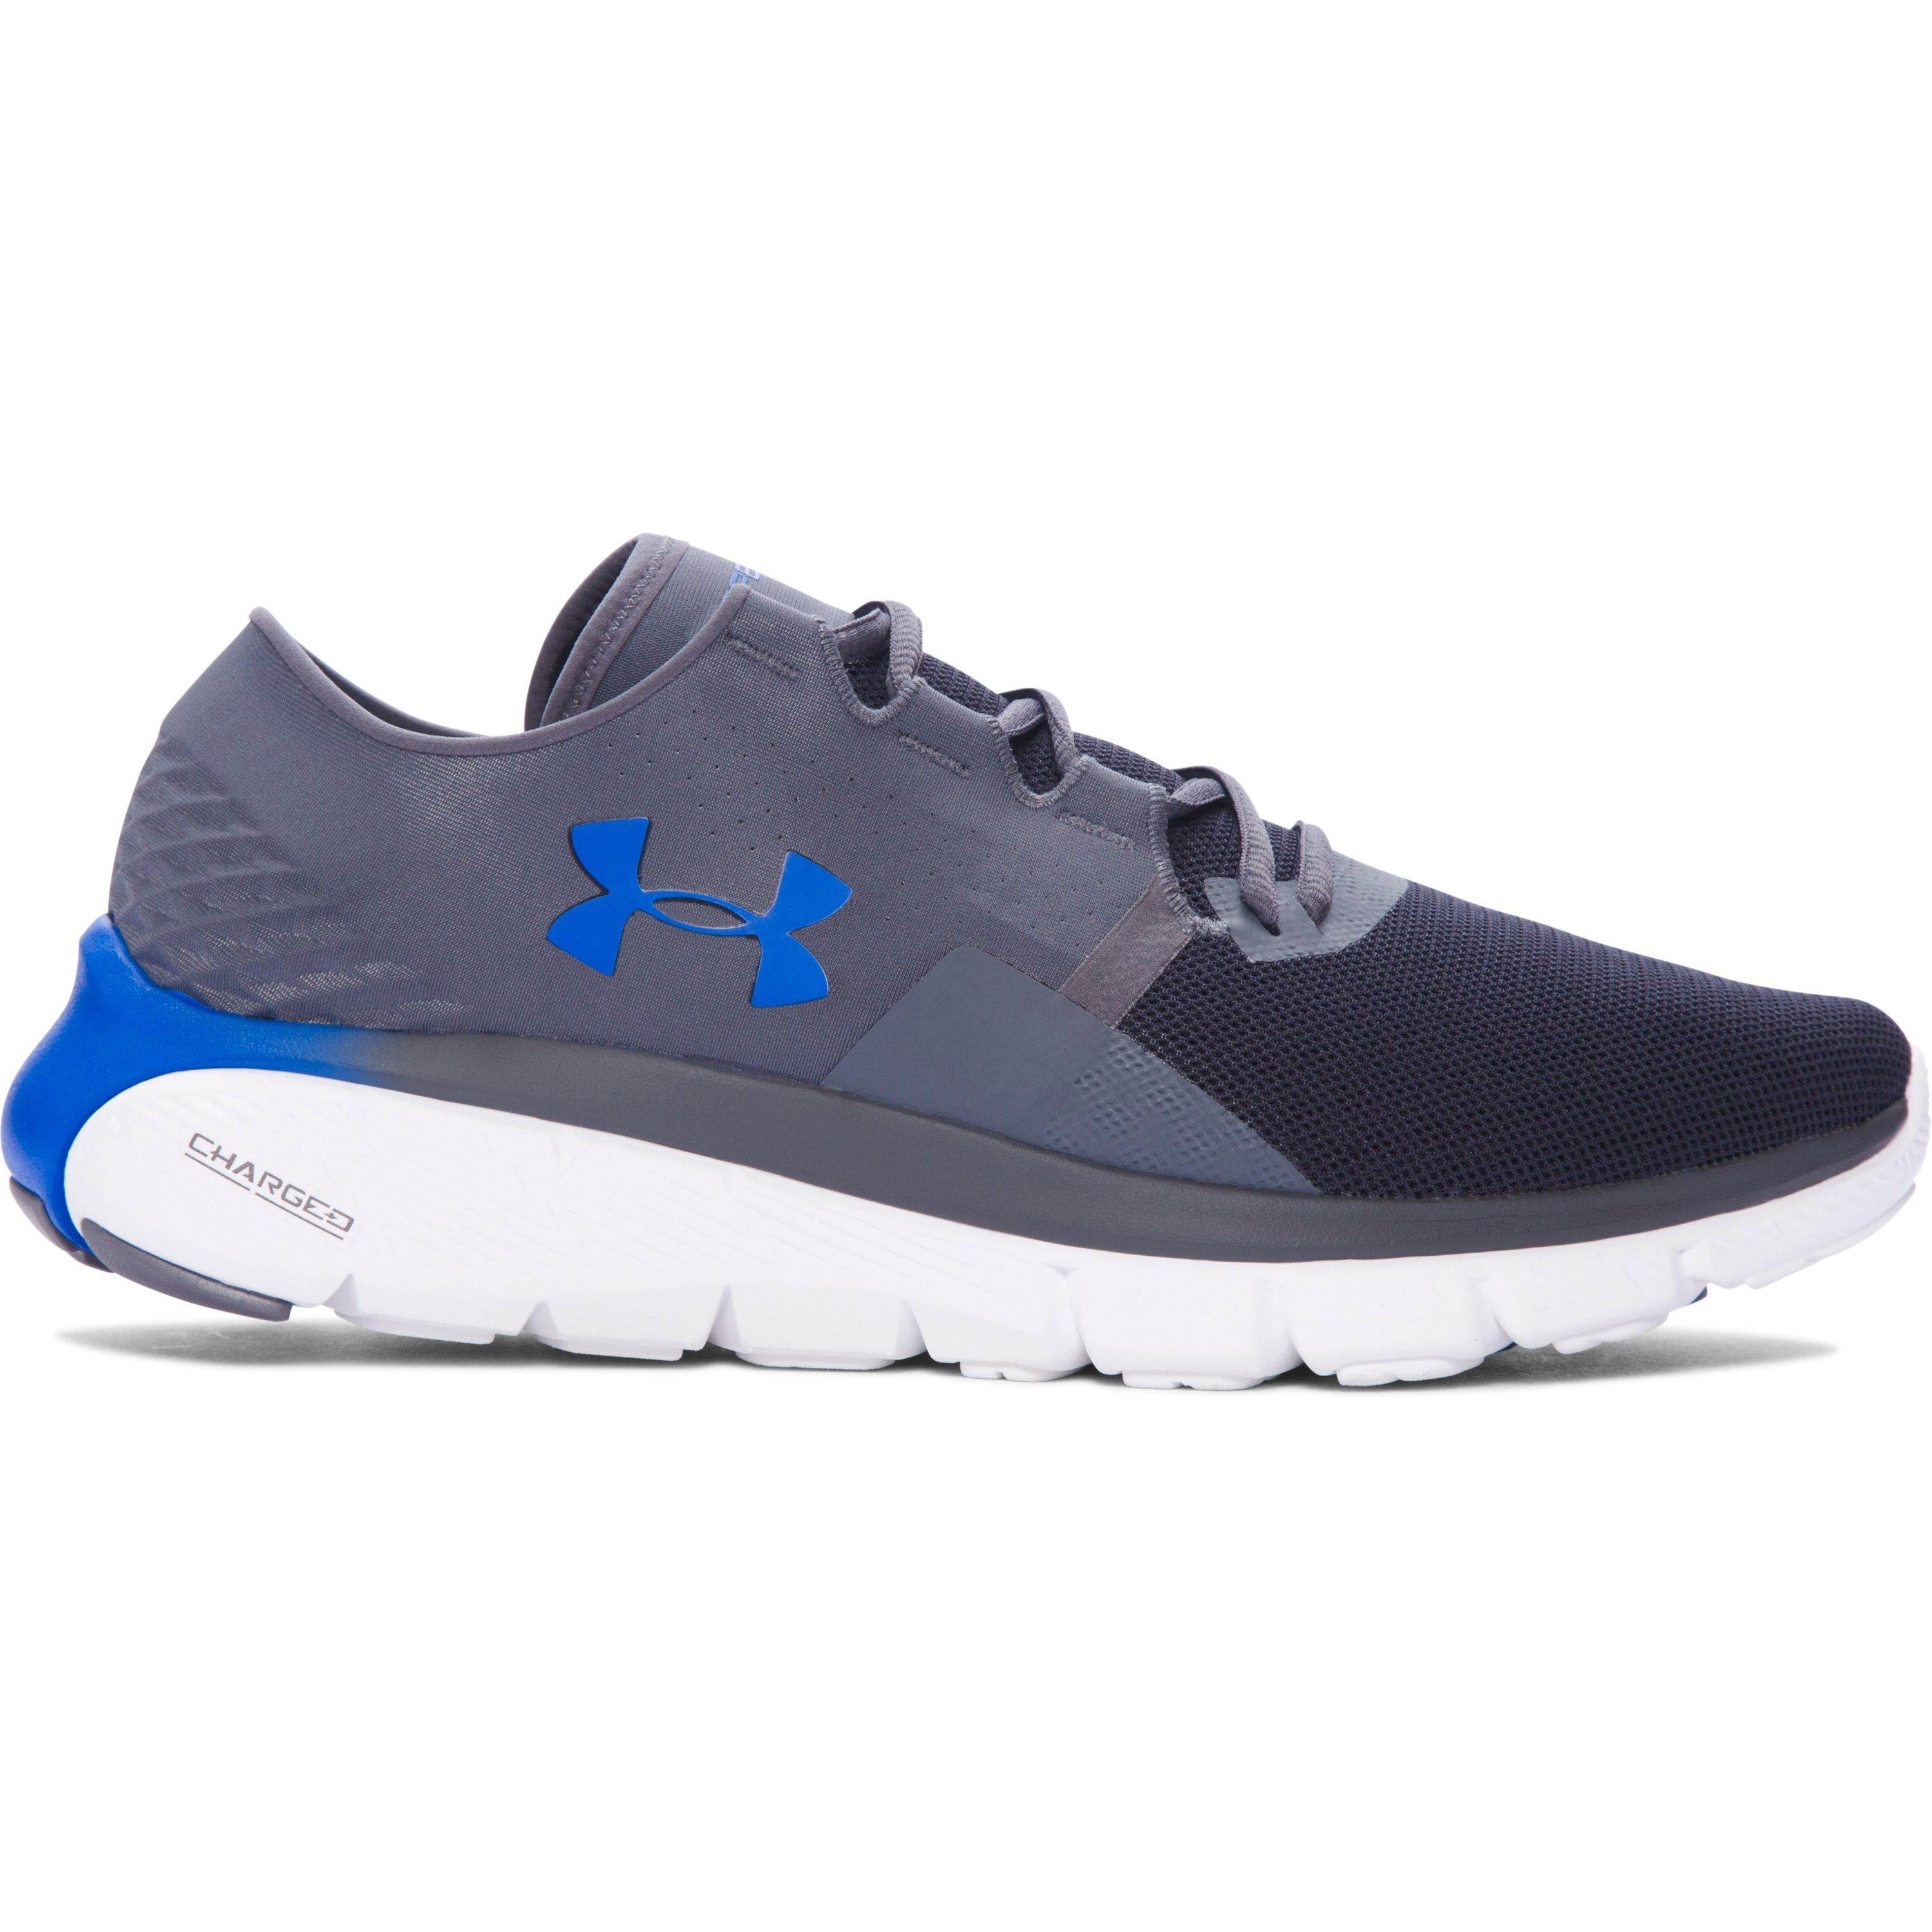 Under Armour. Men's Blue Speedform Fortis 2.1